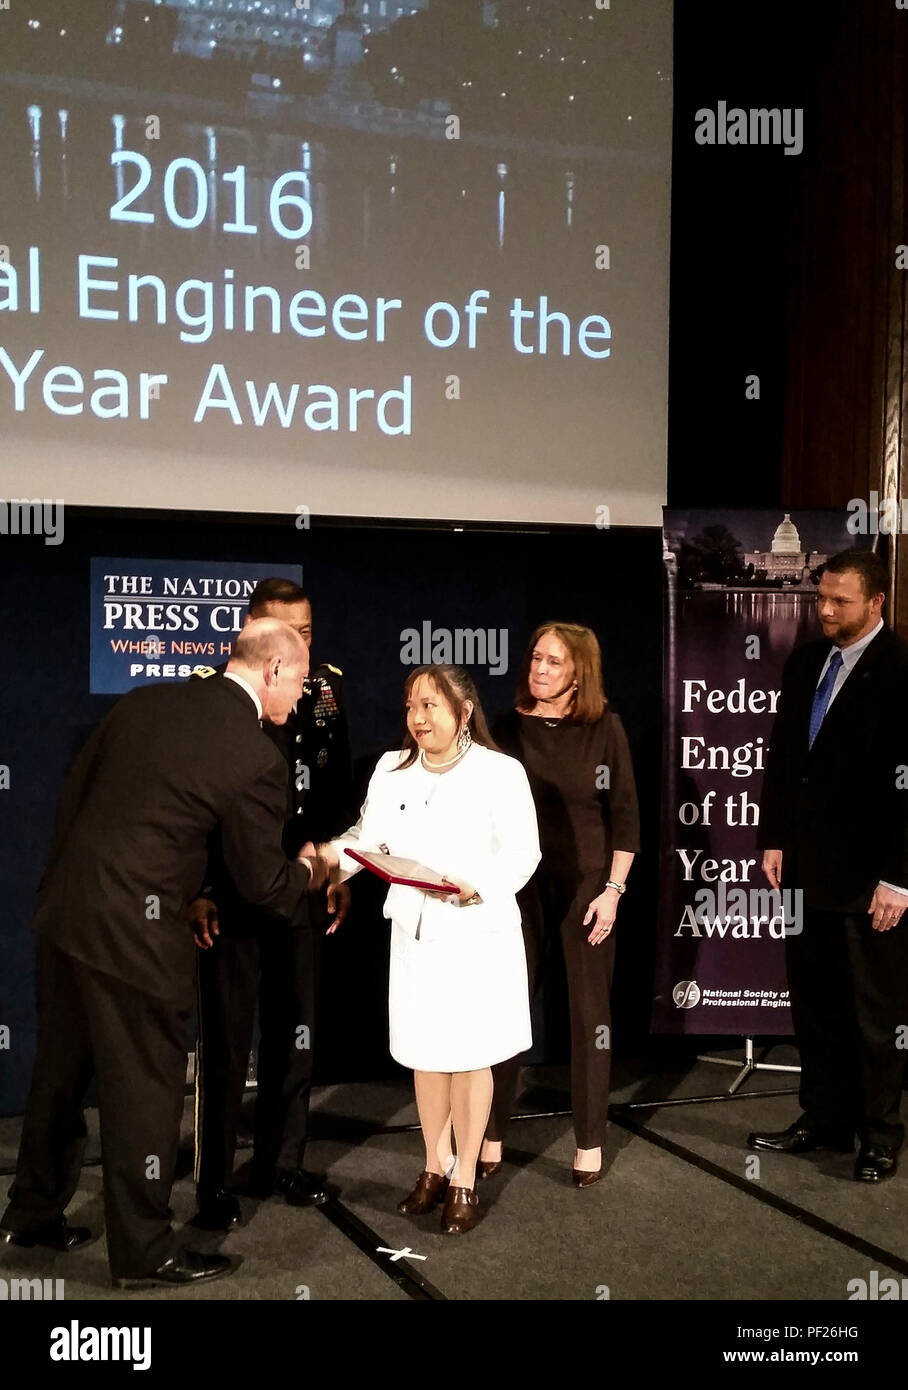 Ingrid Howard, a geotechnical engineer with the U.S. Army Corps of Engineers, Middle East District, was recognized in the National Society of Professional Engineers' 2016 Federal Engineer of the Year Award Ceremony at the National Press Club in Washington Feb. 26. - Stock Image